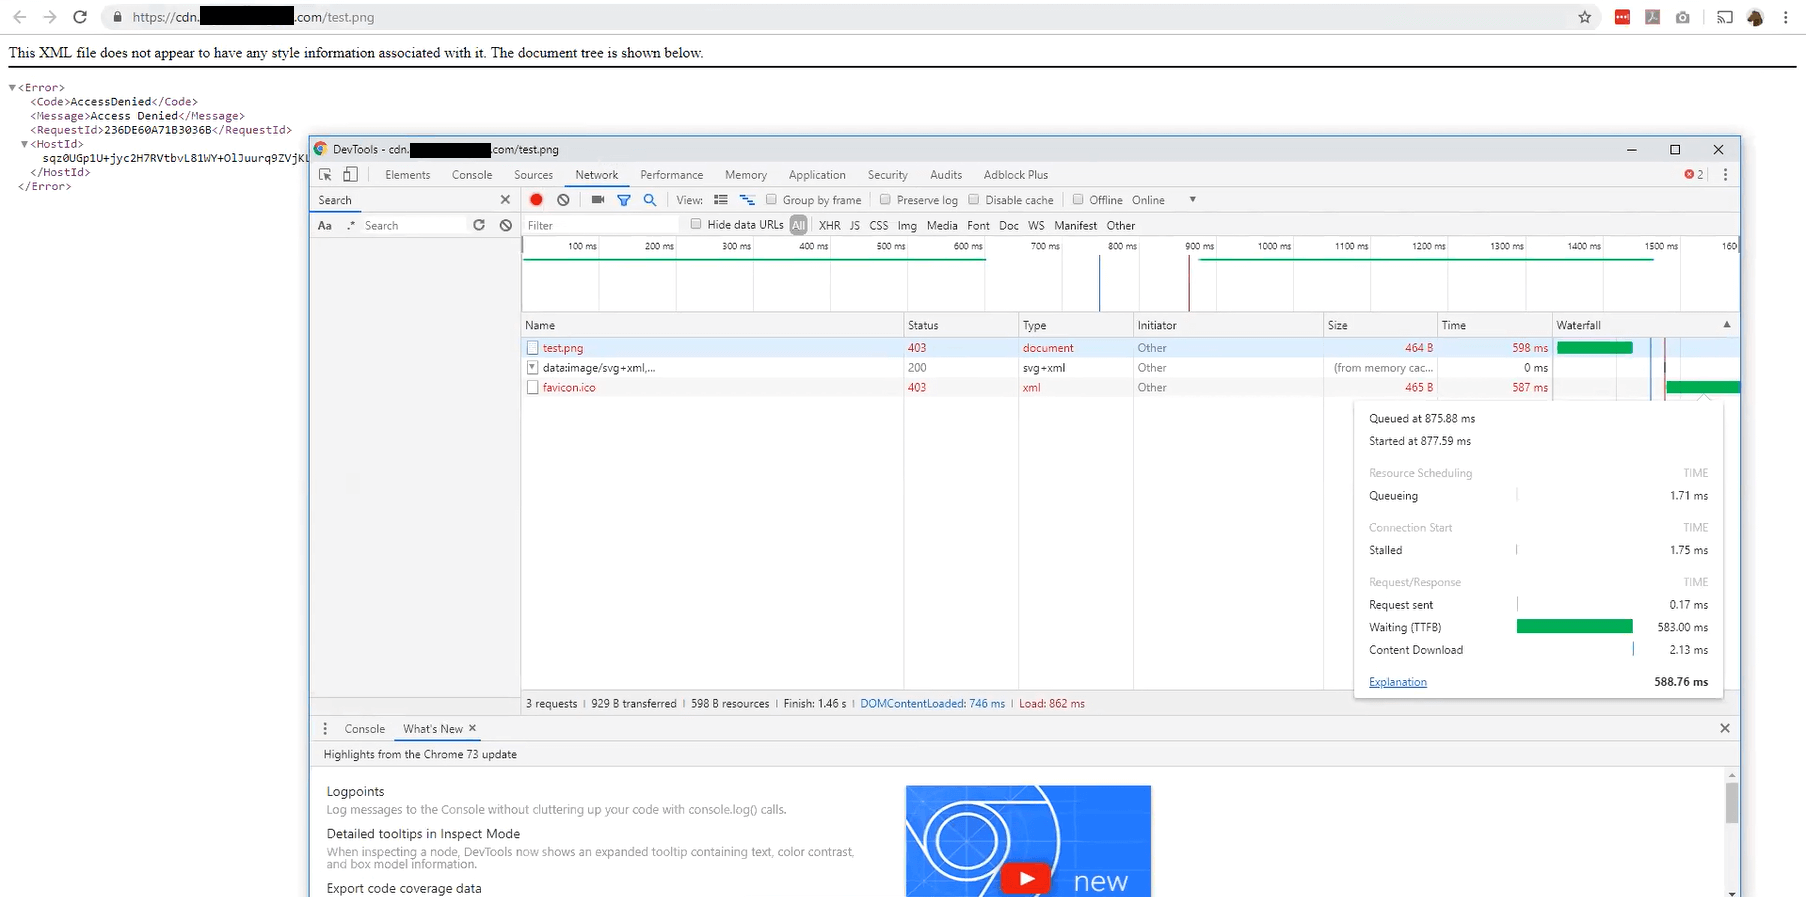 Chrome console for the error document